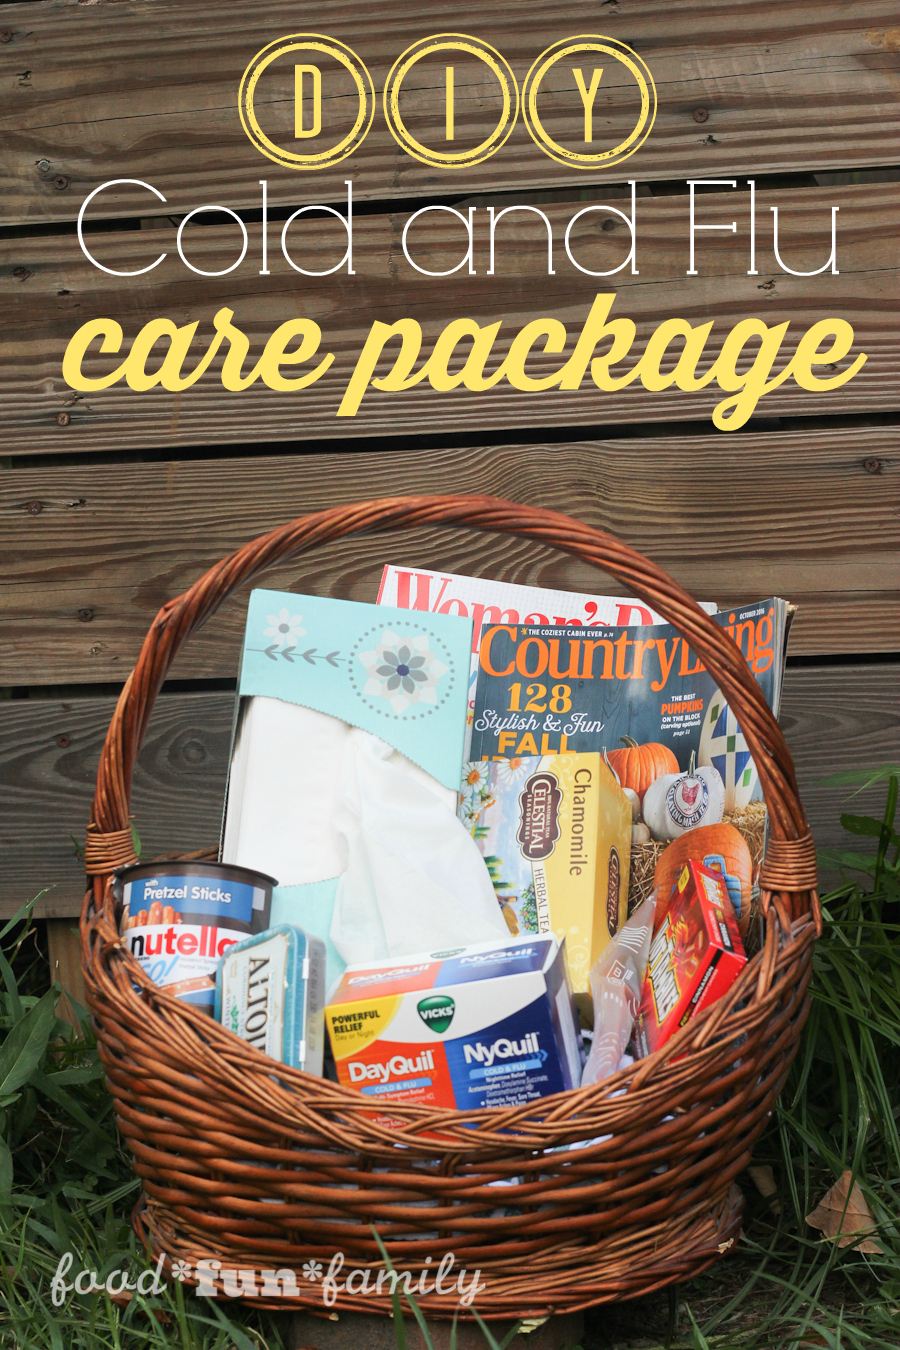 DIY Cold and Flu Care Package